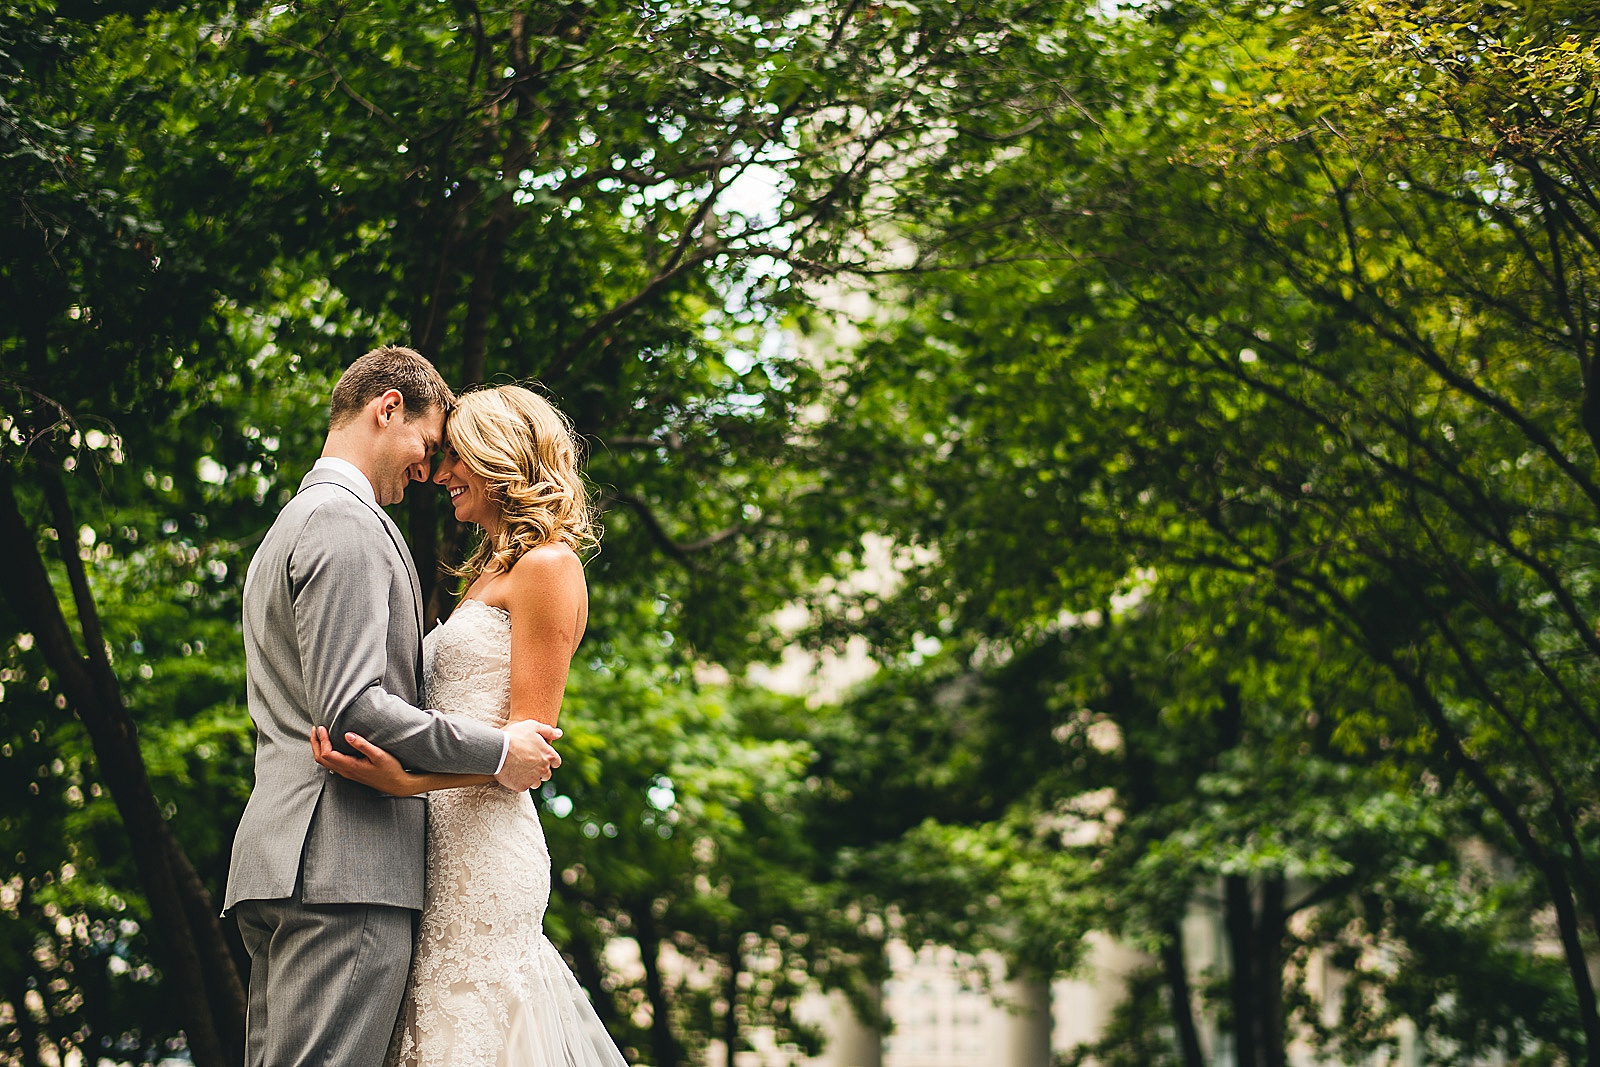 29 chicago wedding photos - Audrey + Jake's Beautiful Chicago Wedding at Chez